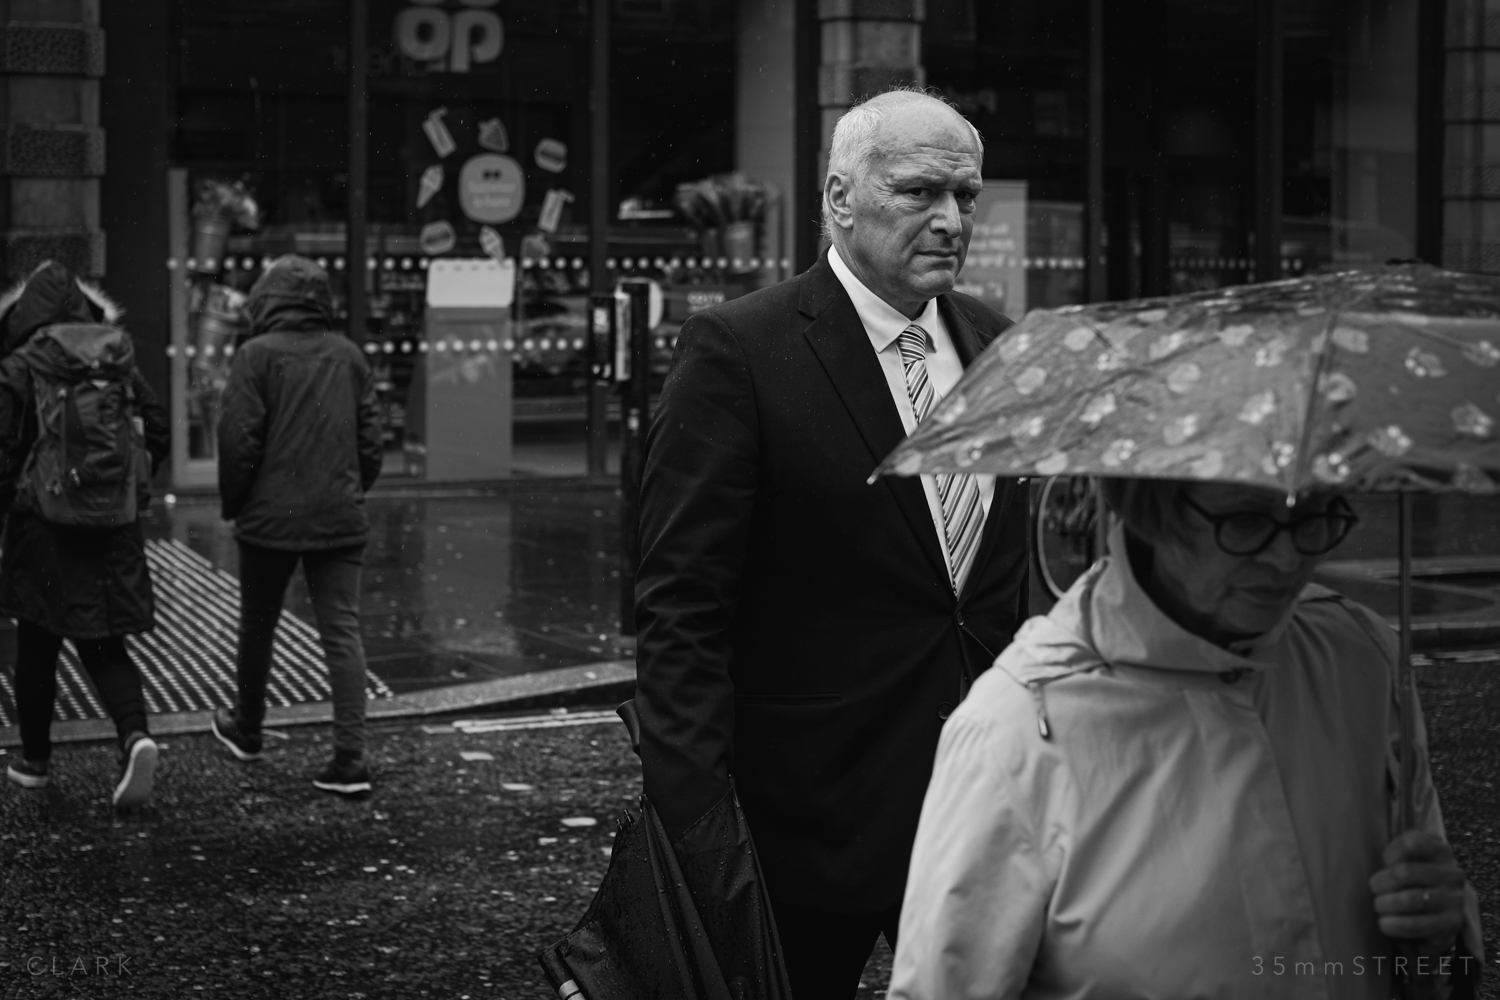 015_35mmStreet-Rainy-Friday-Glasgow.jpg